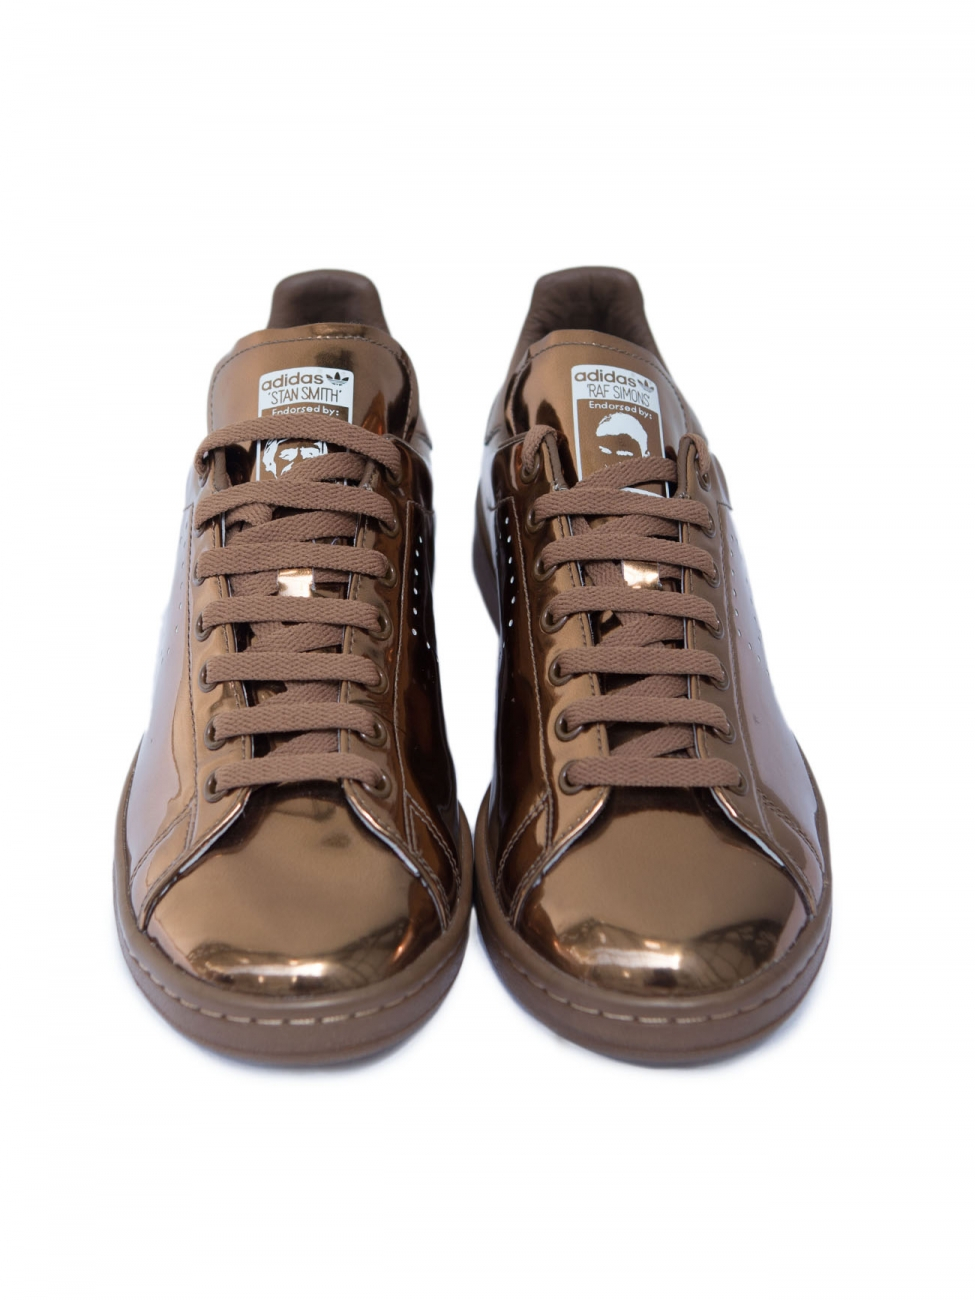 adidas stan smith gold brown